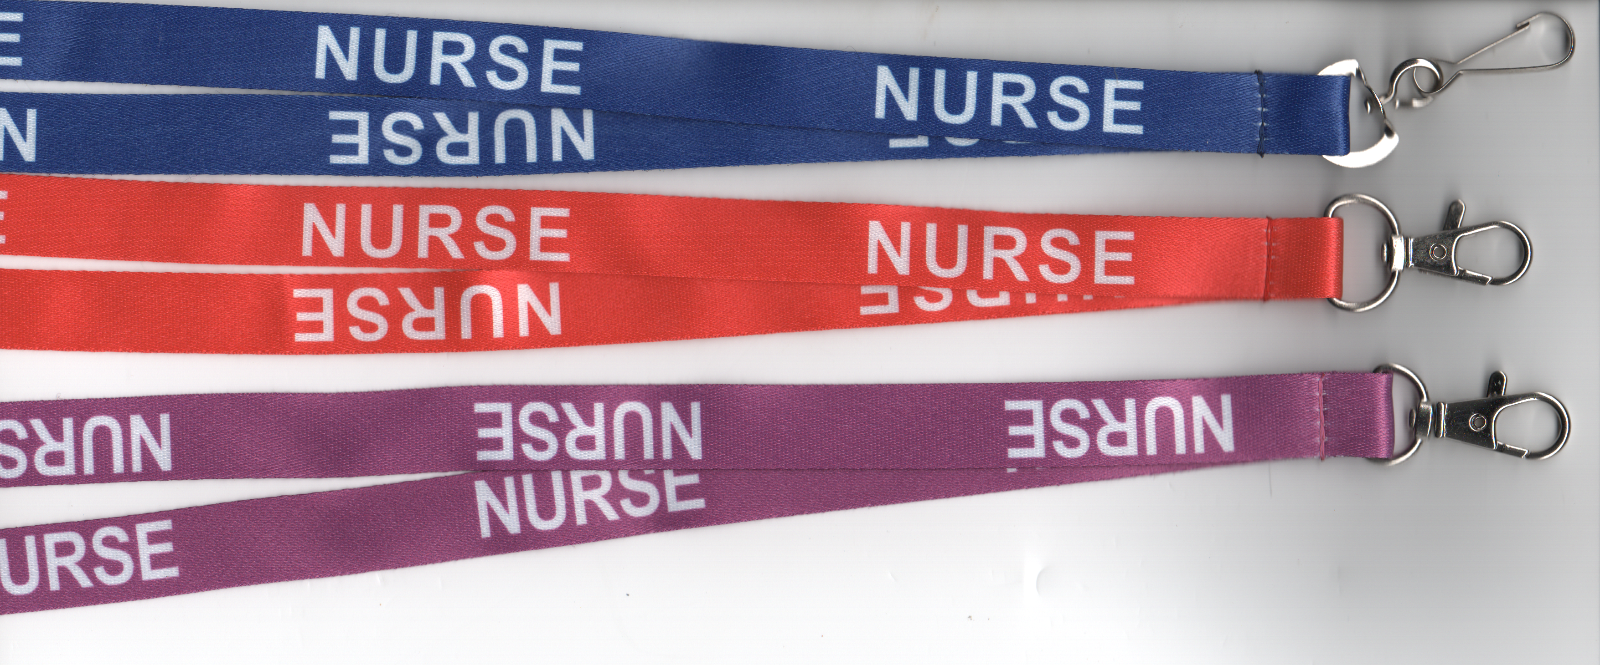 1 NURSE Printed Hospital Safety Lanyard with Breakaway Clip 4 Colours FREE UK PP